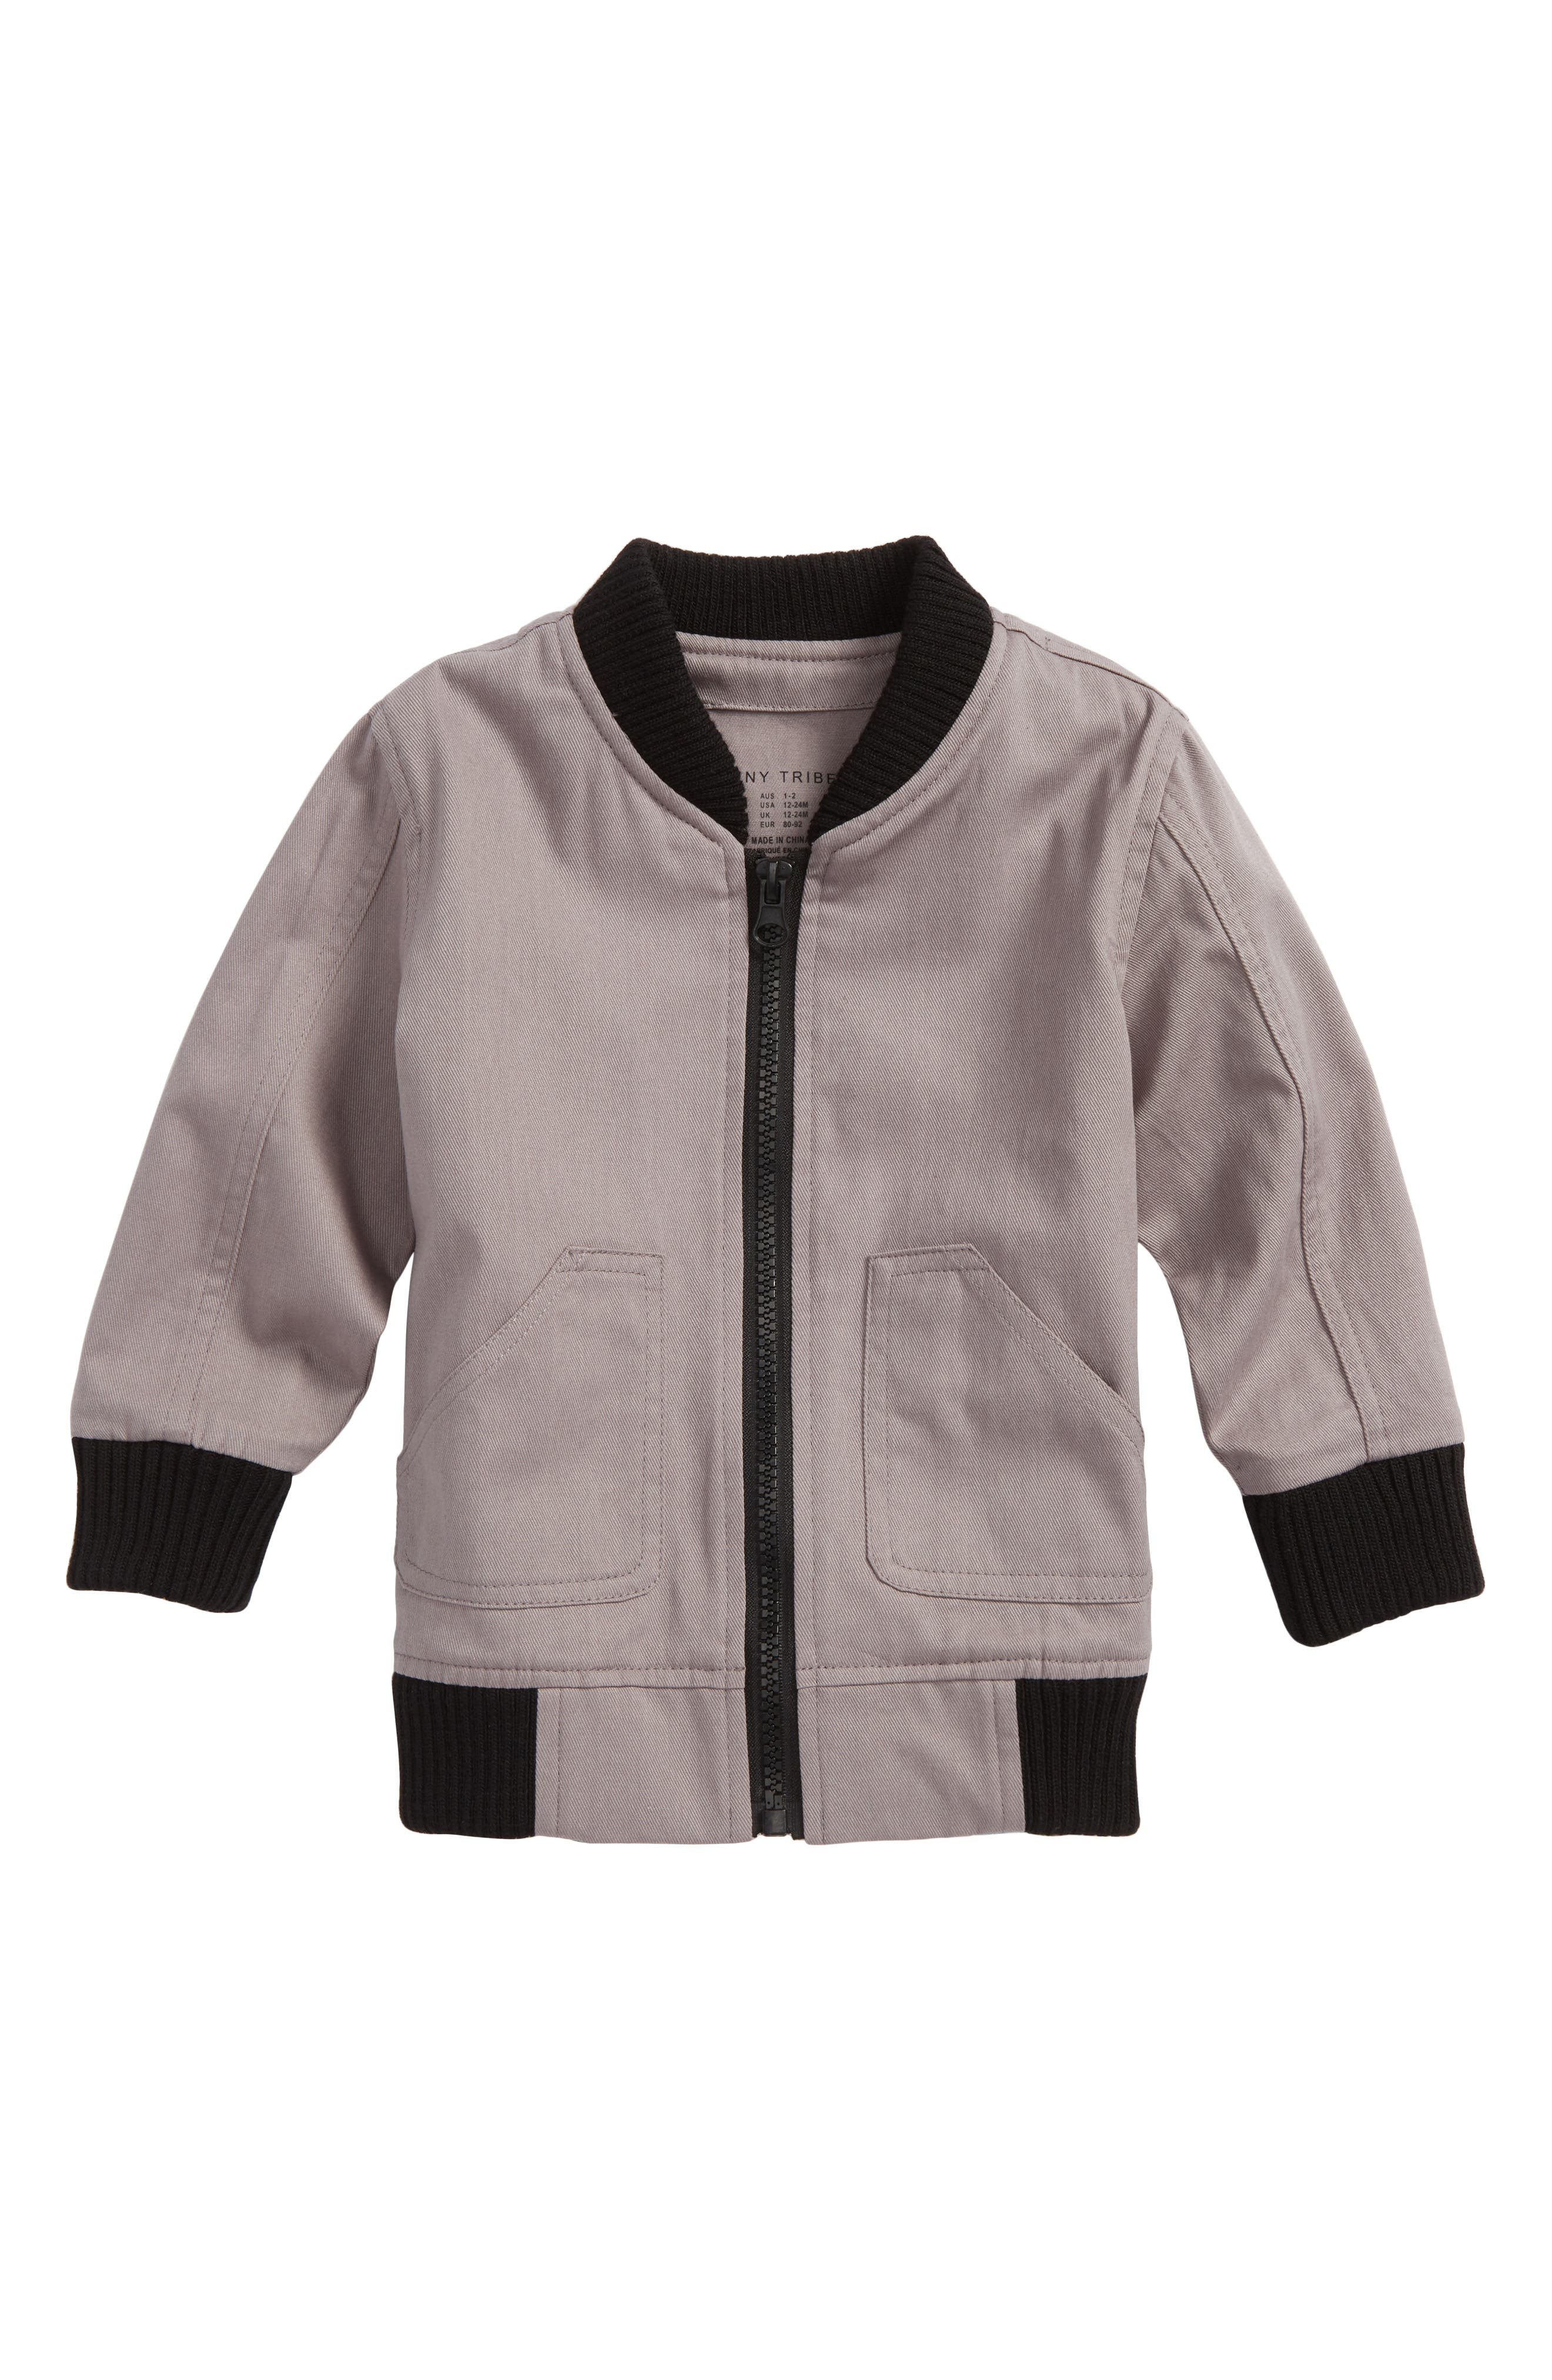 One Fine Apple Bomber Jacket,                         Main,                         color, Grey